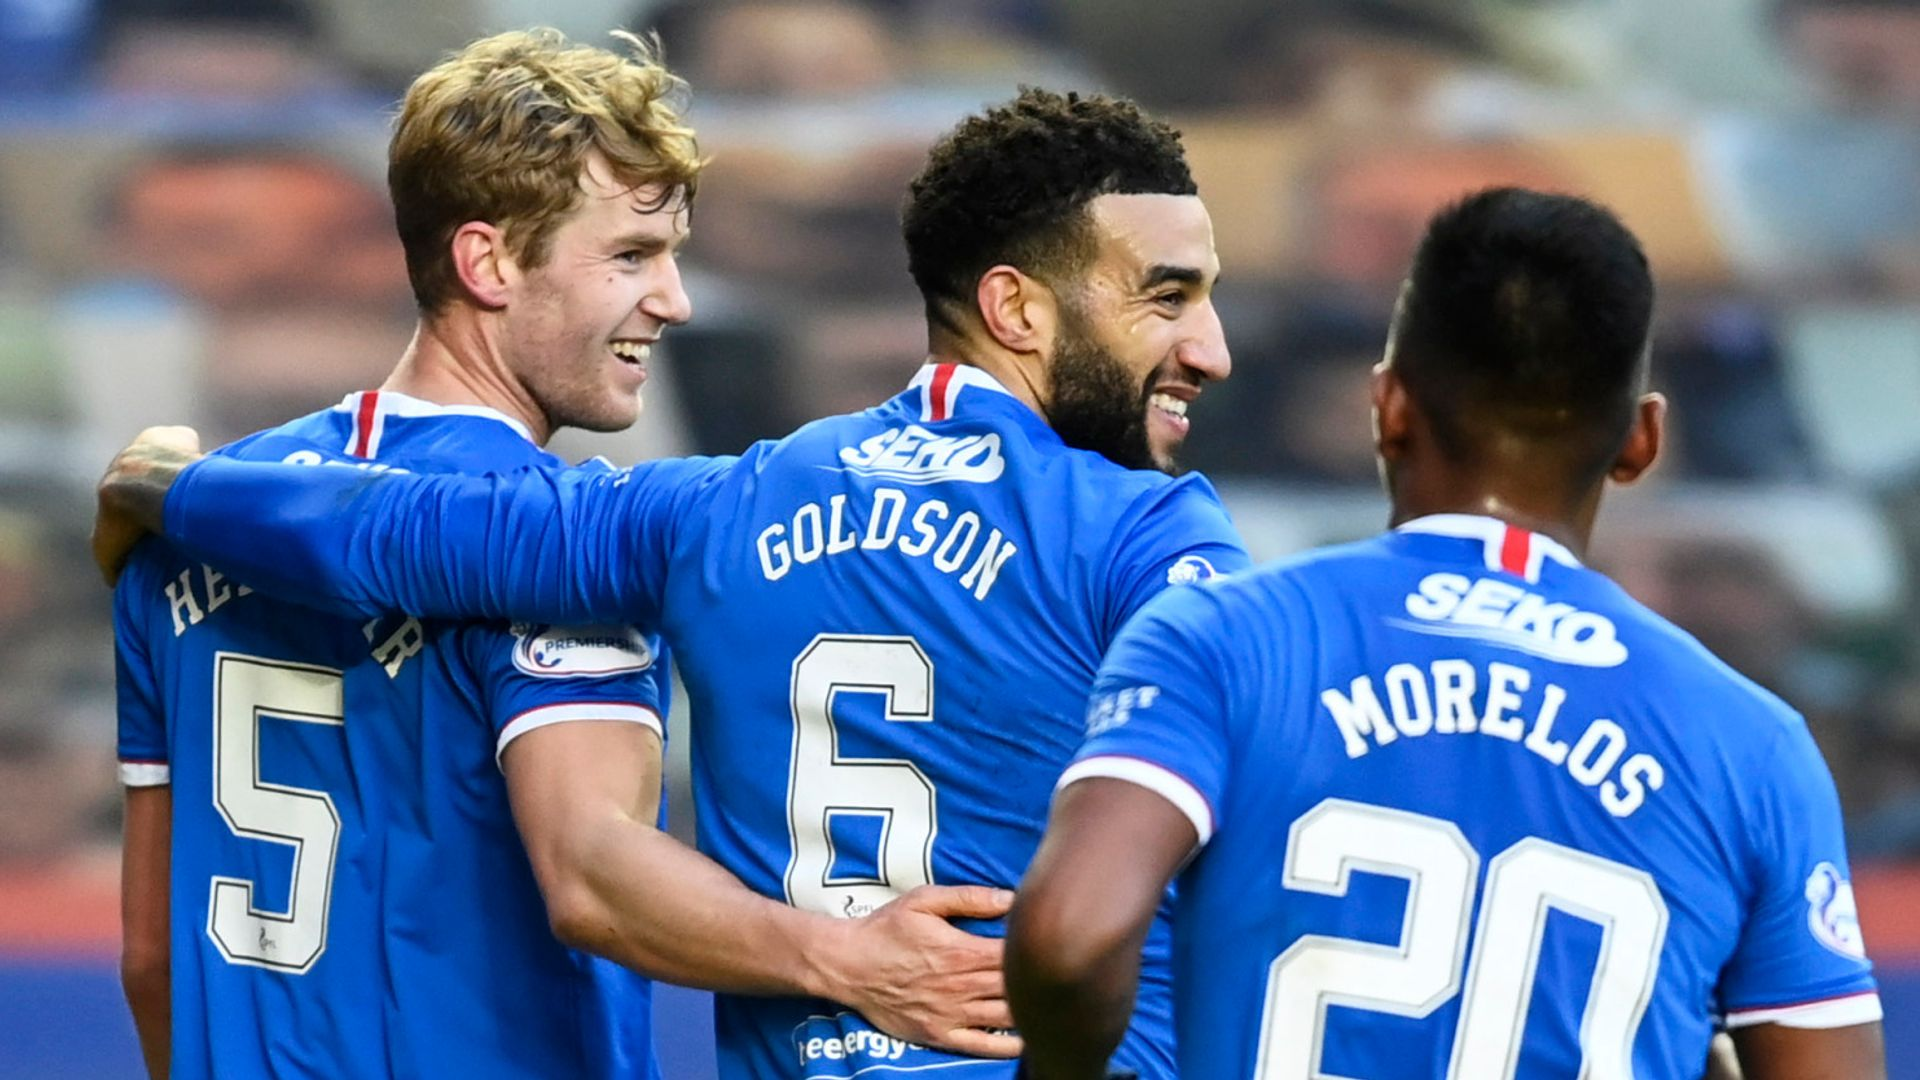 Rangers thrash Ross County to go 23 points clear - sky sports